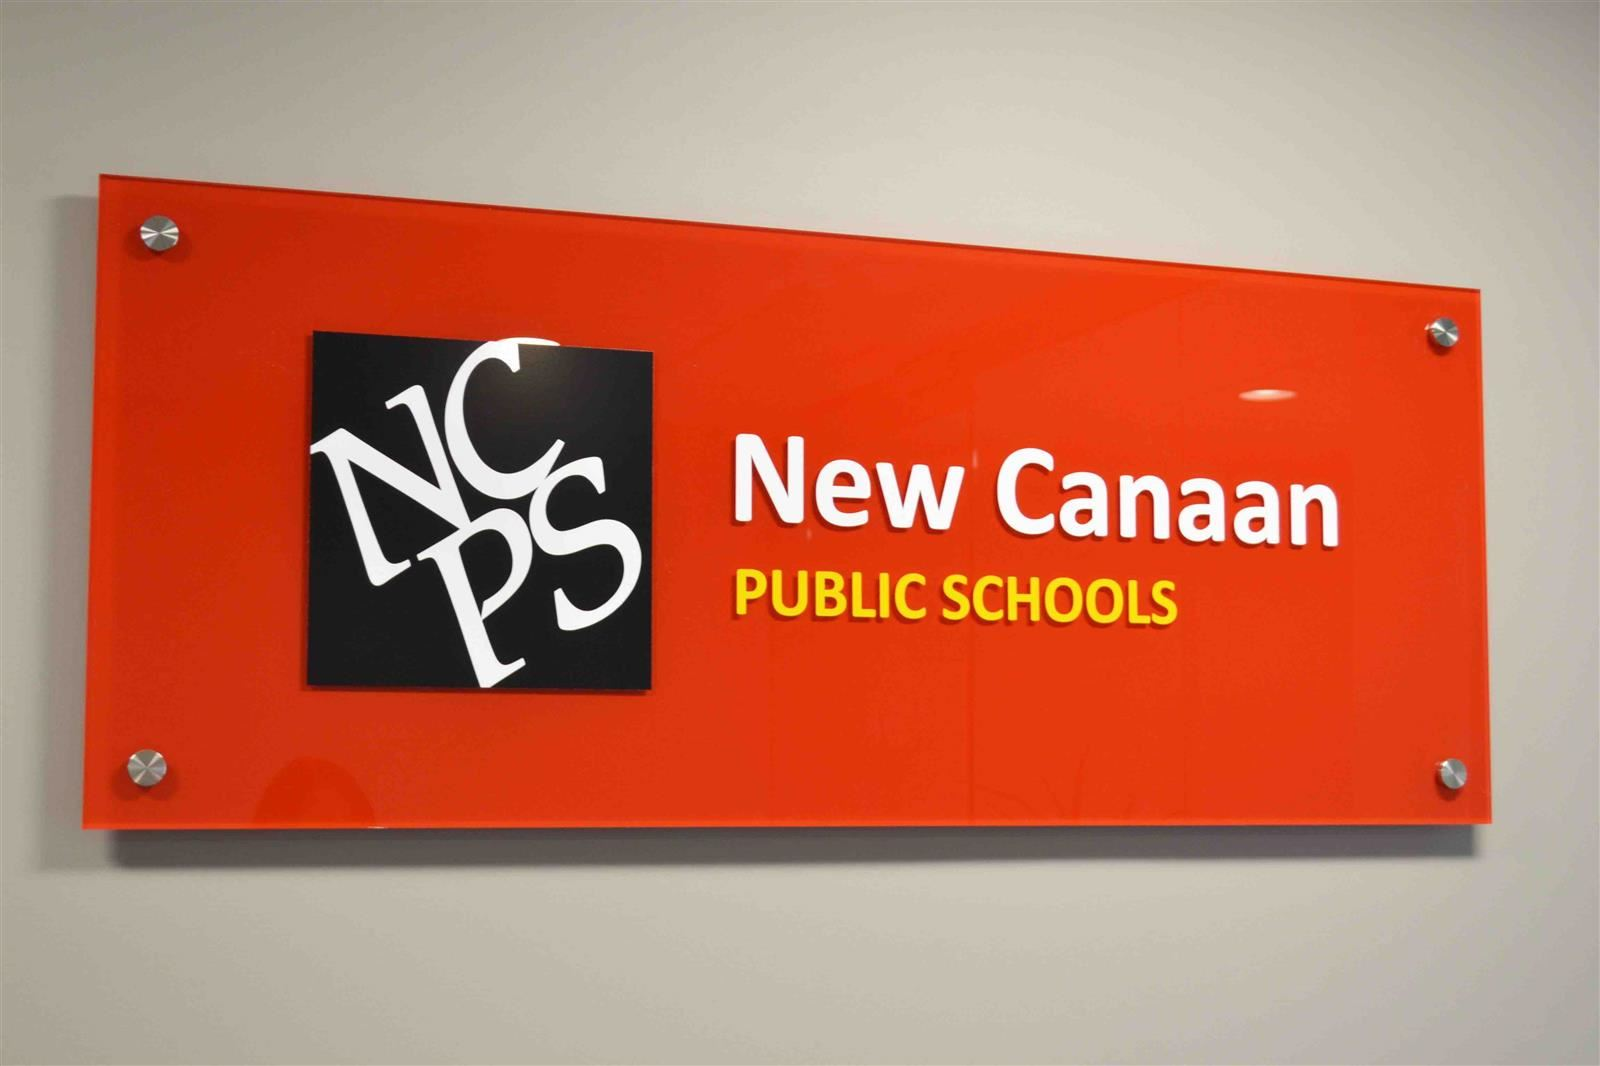 New Canaan Public Schools earns high marks in latest survey